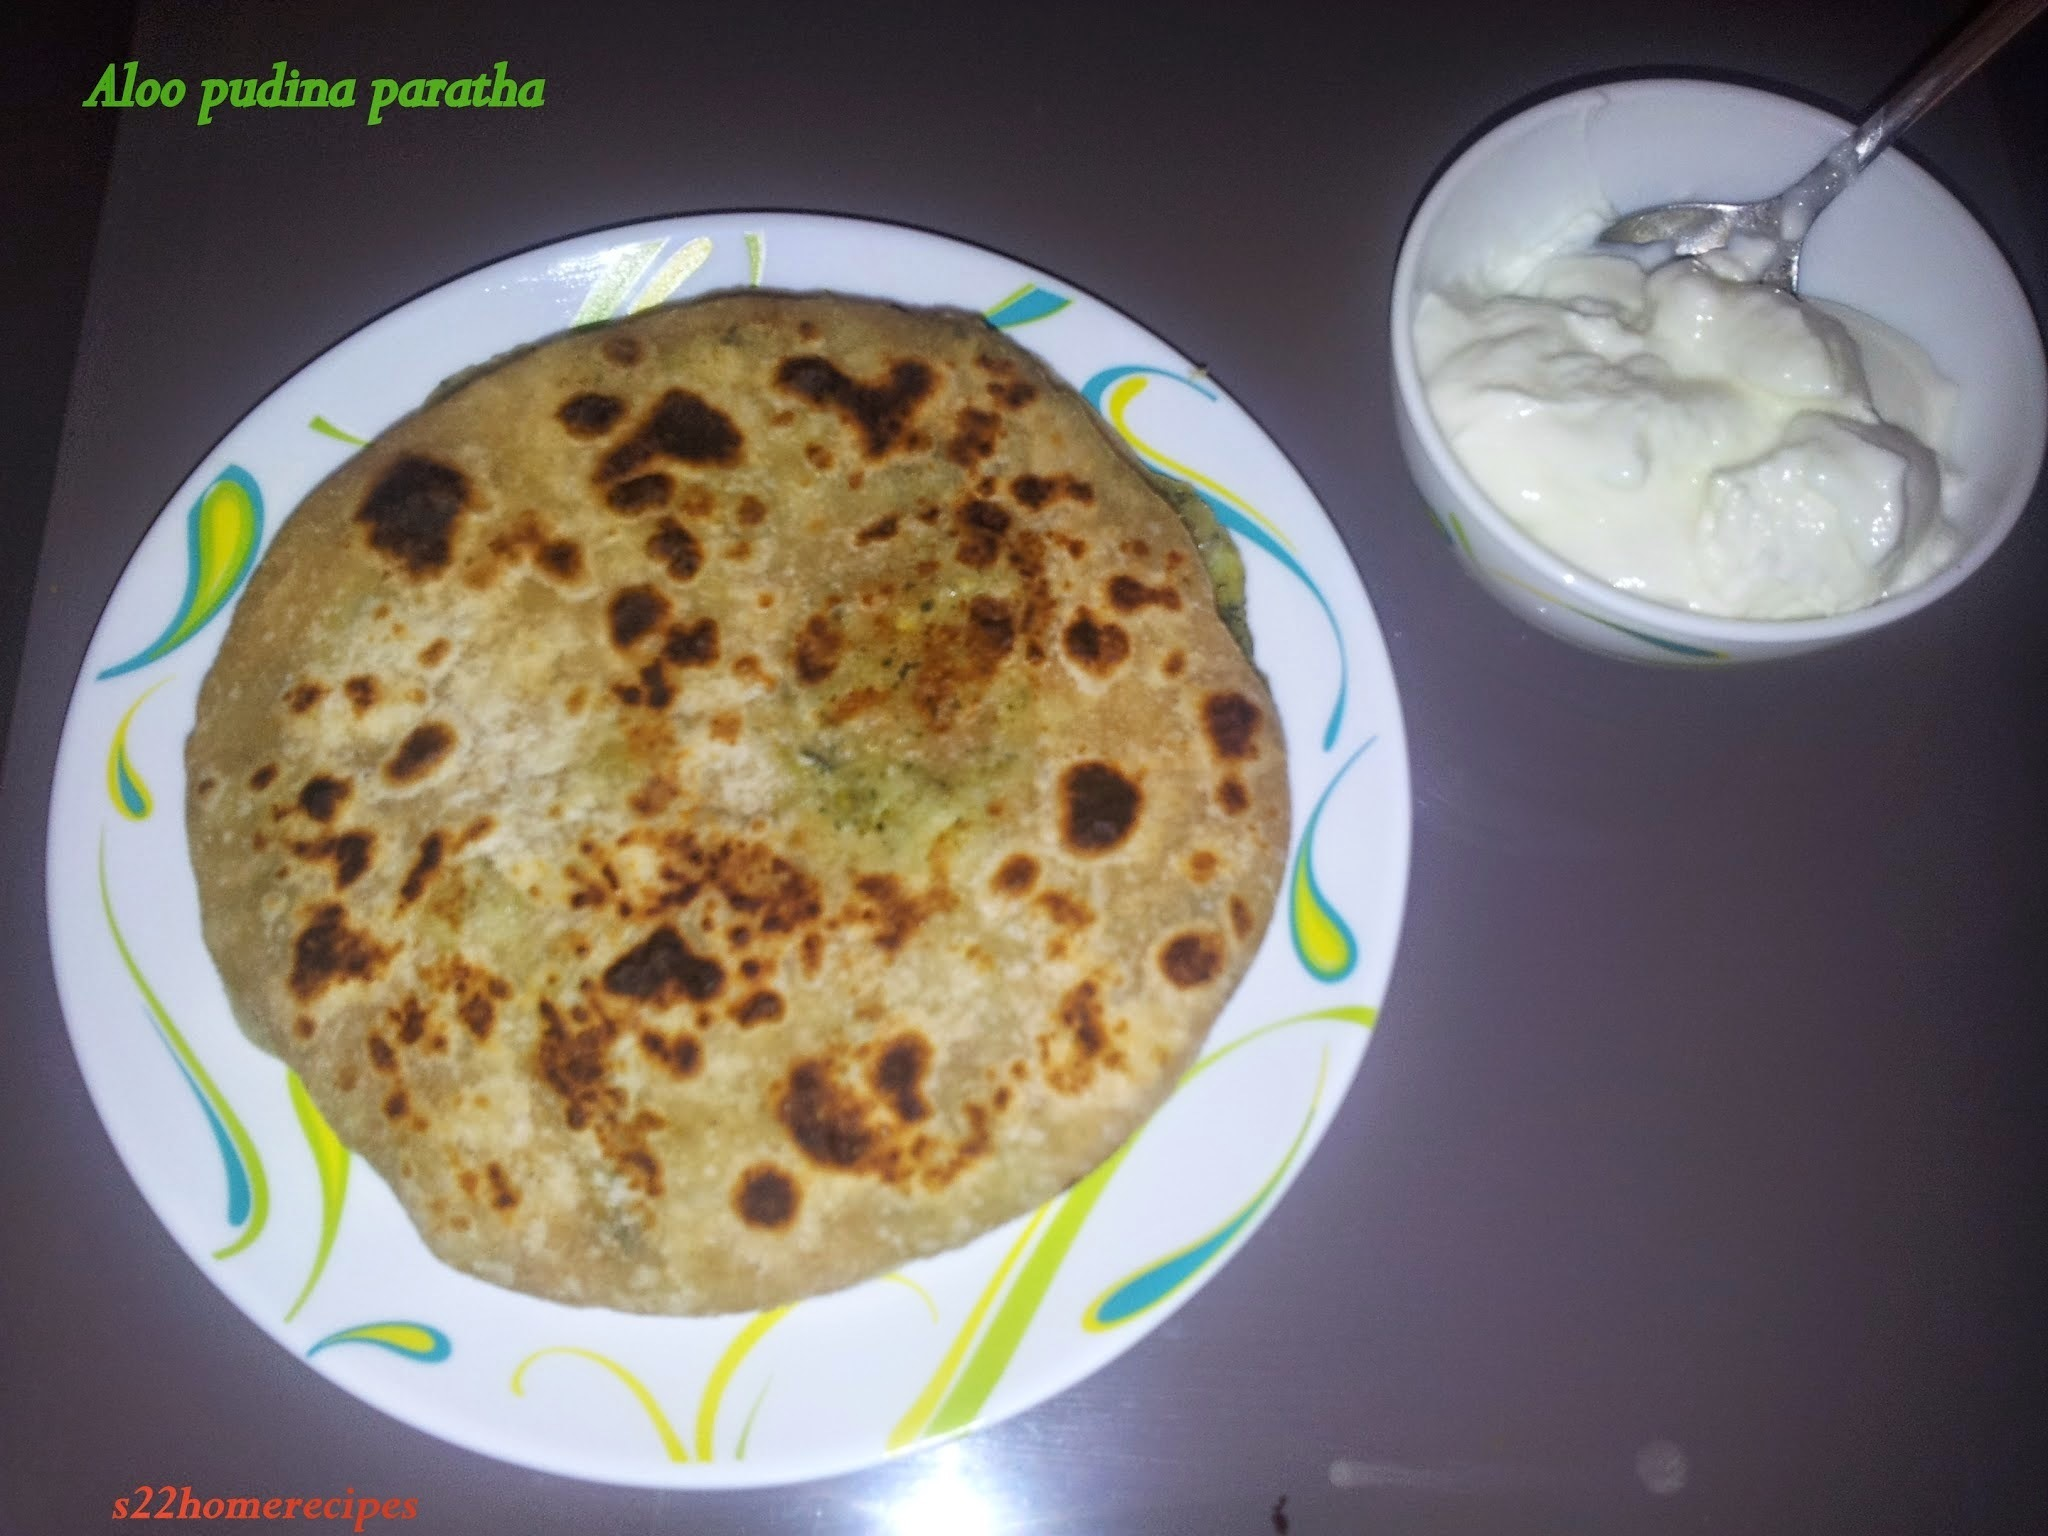 Aloo pudina paratha(Potato and fresh mint paratha)